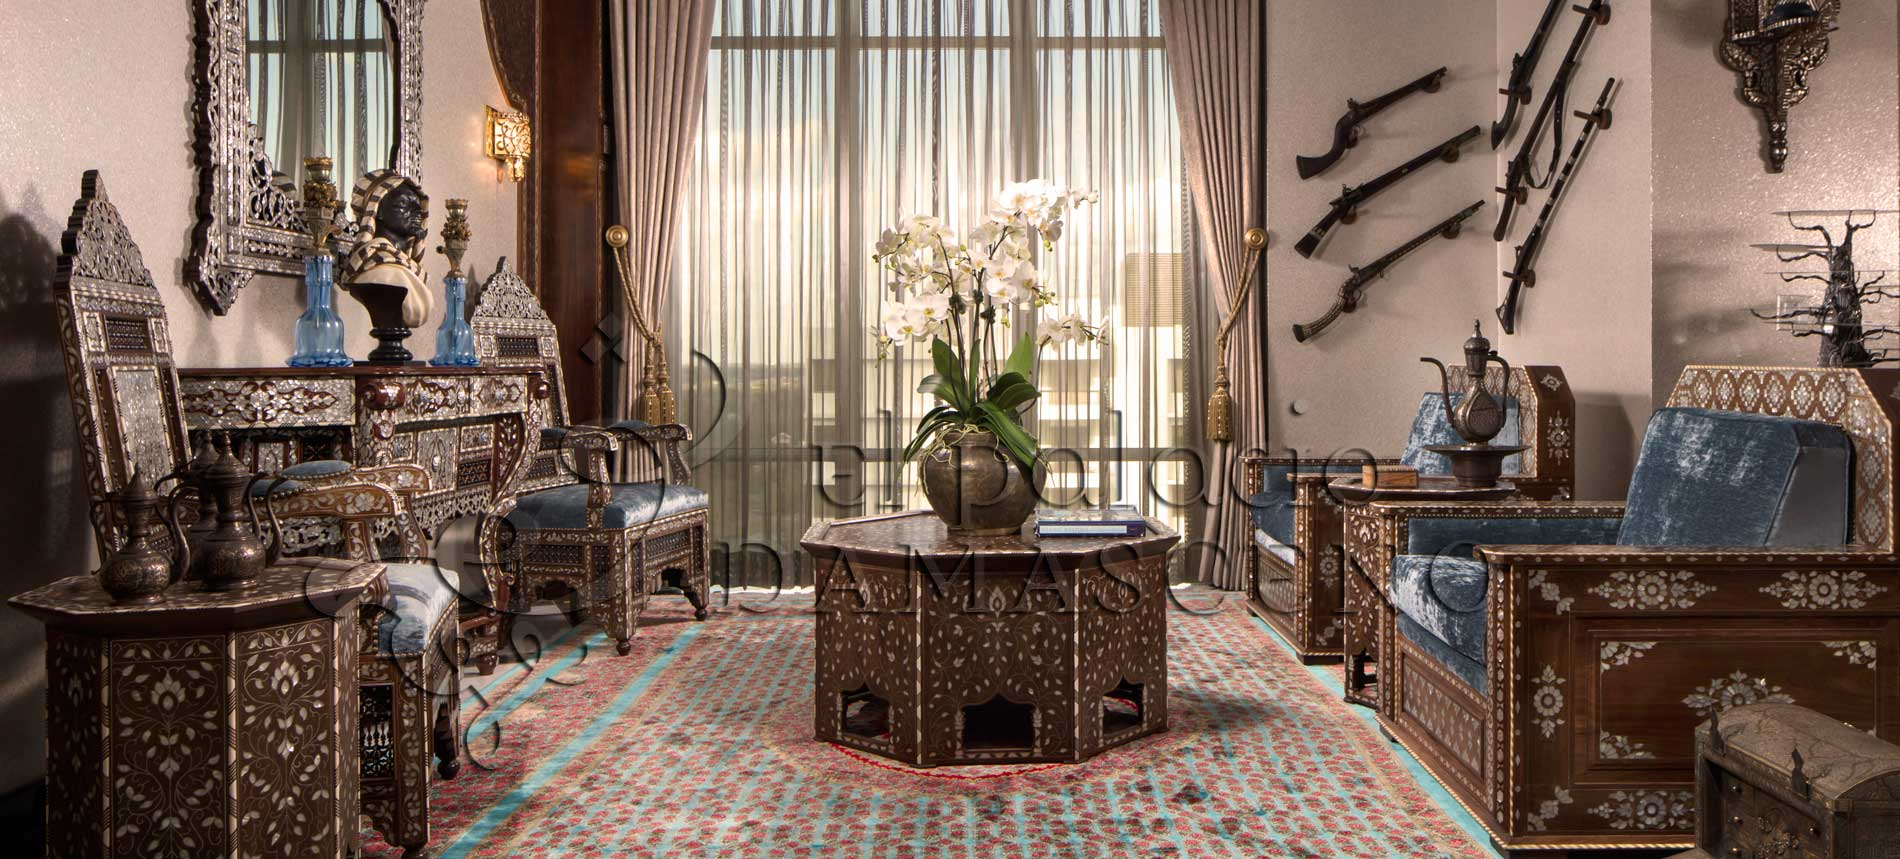 Enter and discover our exquisite Collection